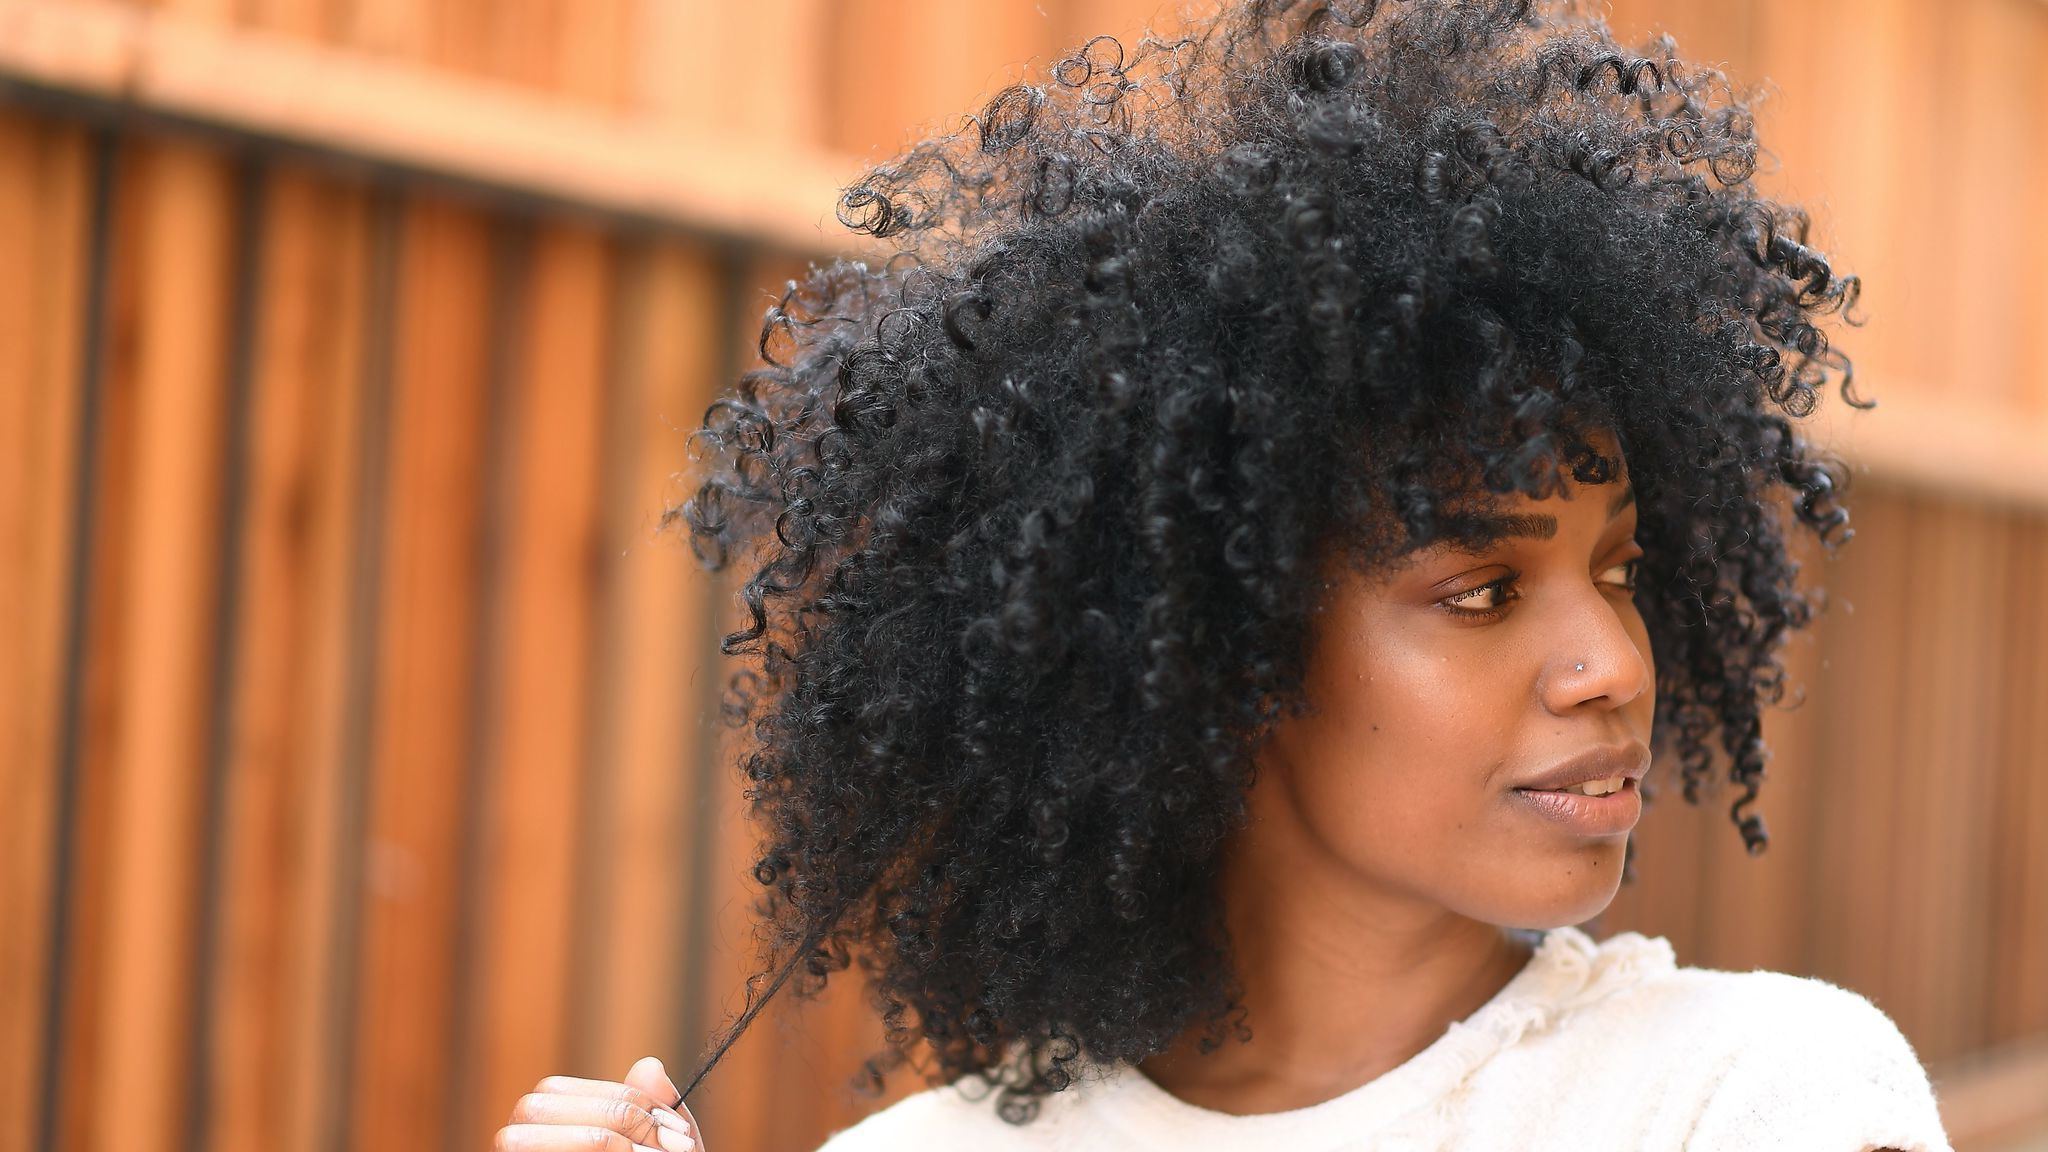 African American Natural Hairstyles For Medium Length Hair Throughout Fashionable Afro Medium Haircuts (Gallery 5 of 20)